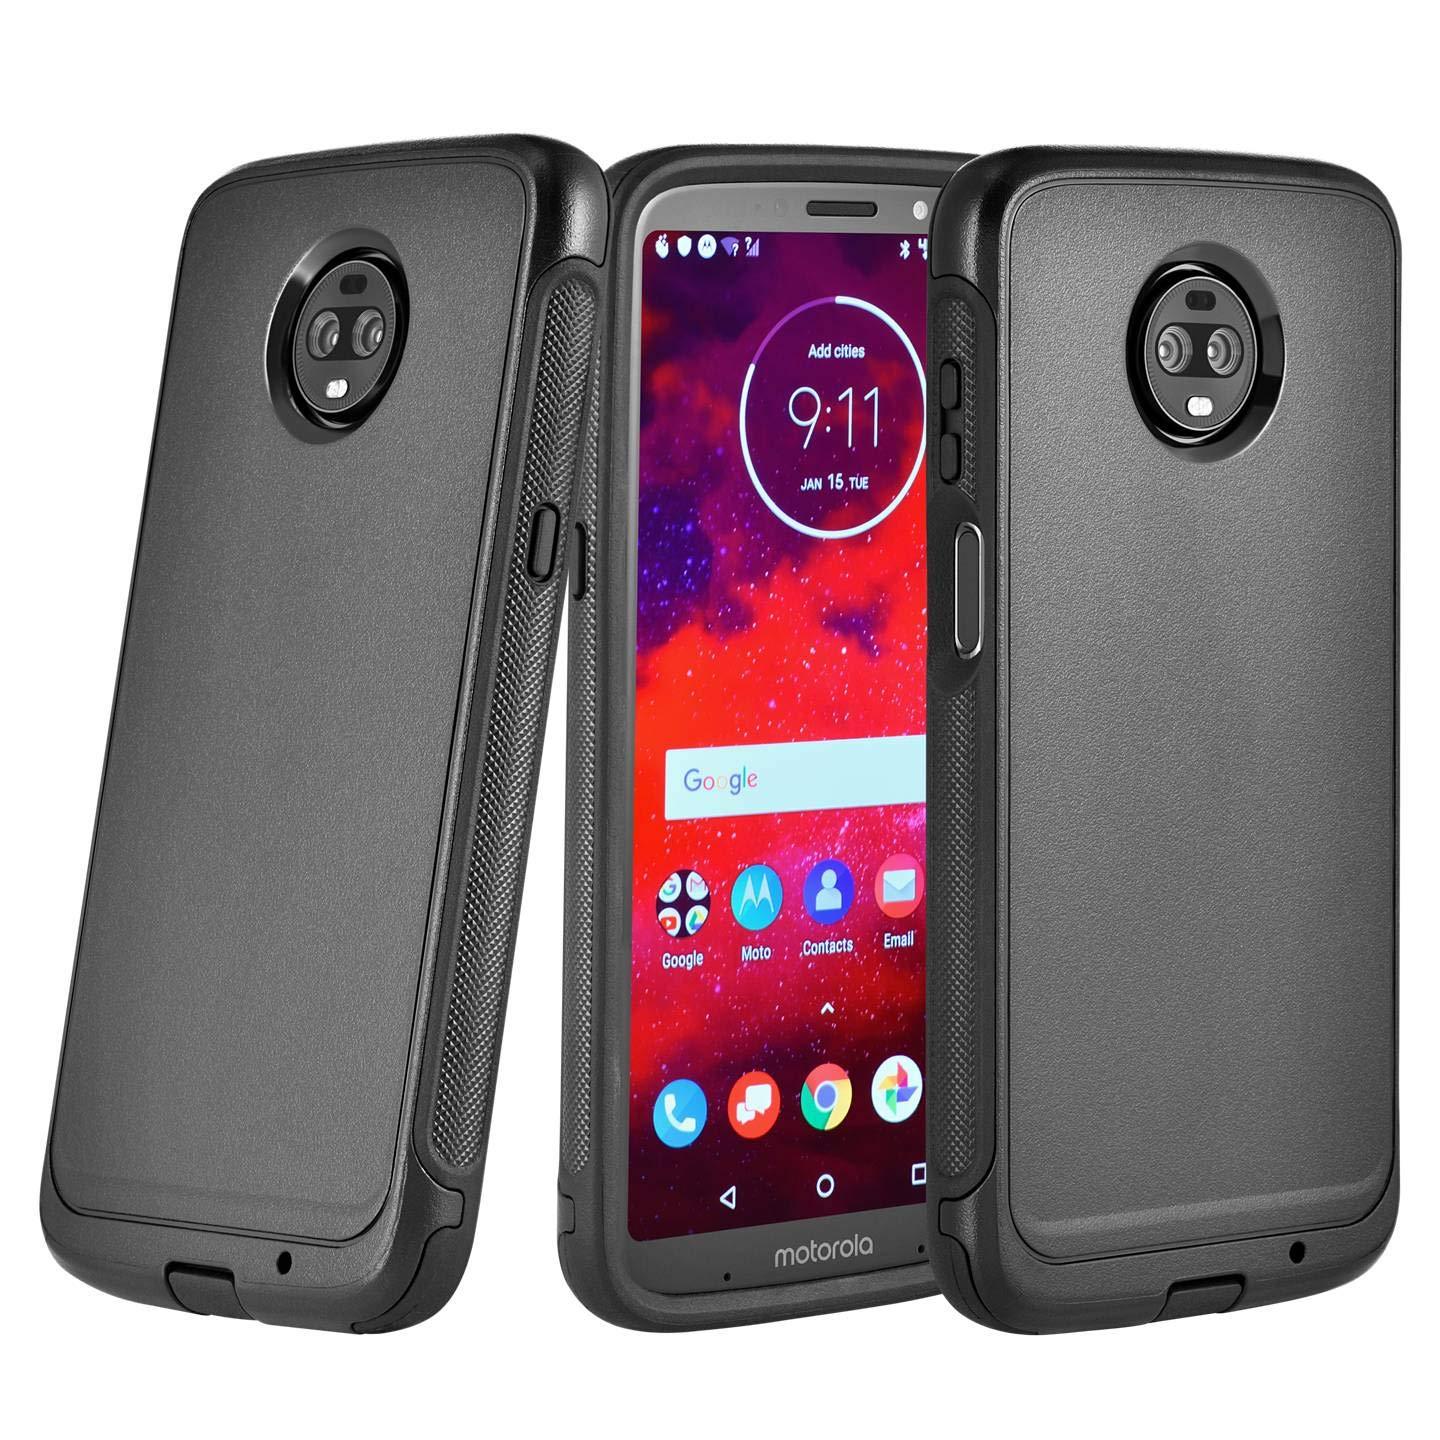 Moto Z3 Moto Z3 Play Case - Rugged Design Protective Heavy Duty Dual Layer  Black (Does not Work with Other Models Moto Z2 Force, Moto Z, Z Force, and